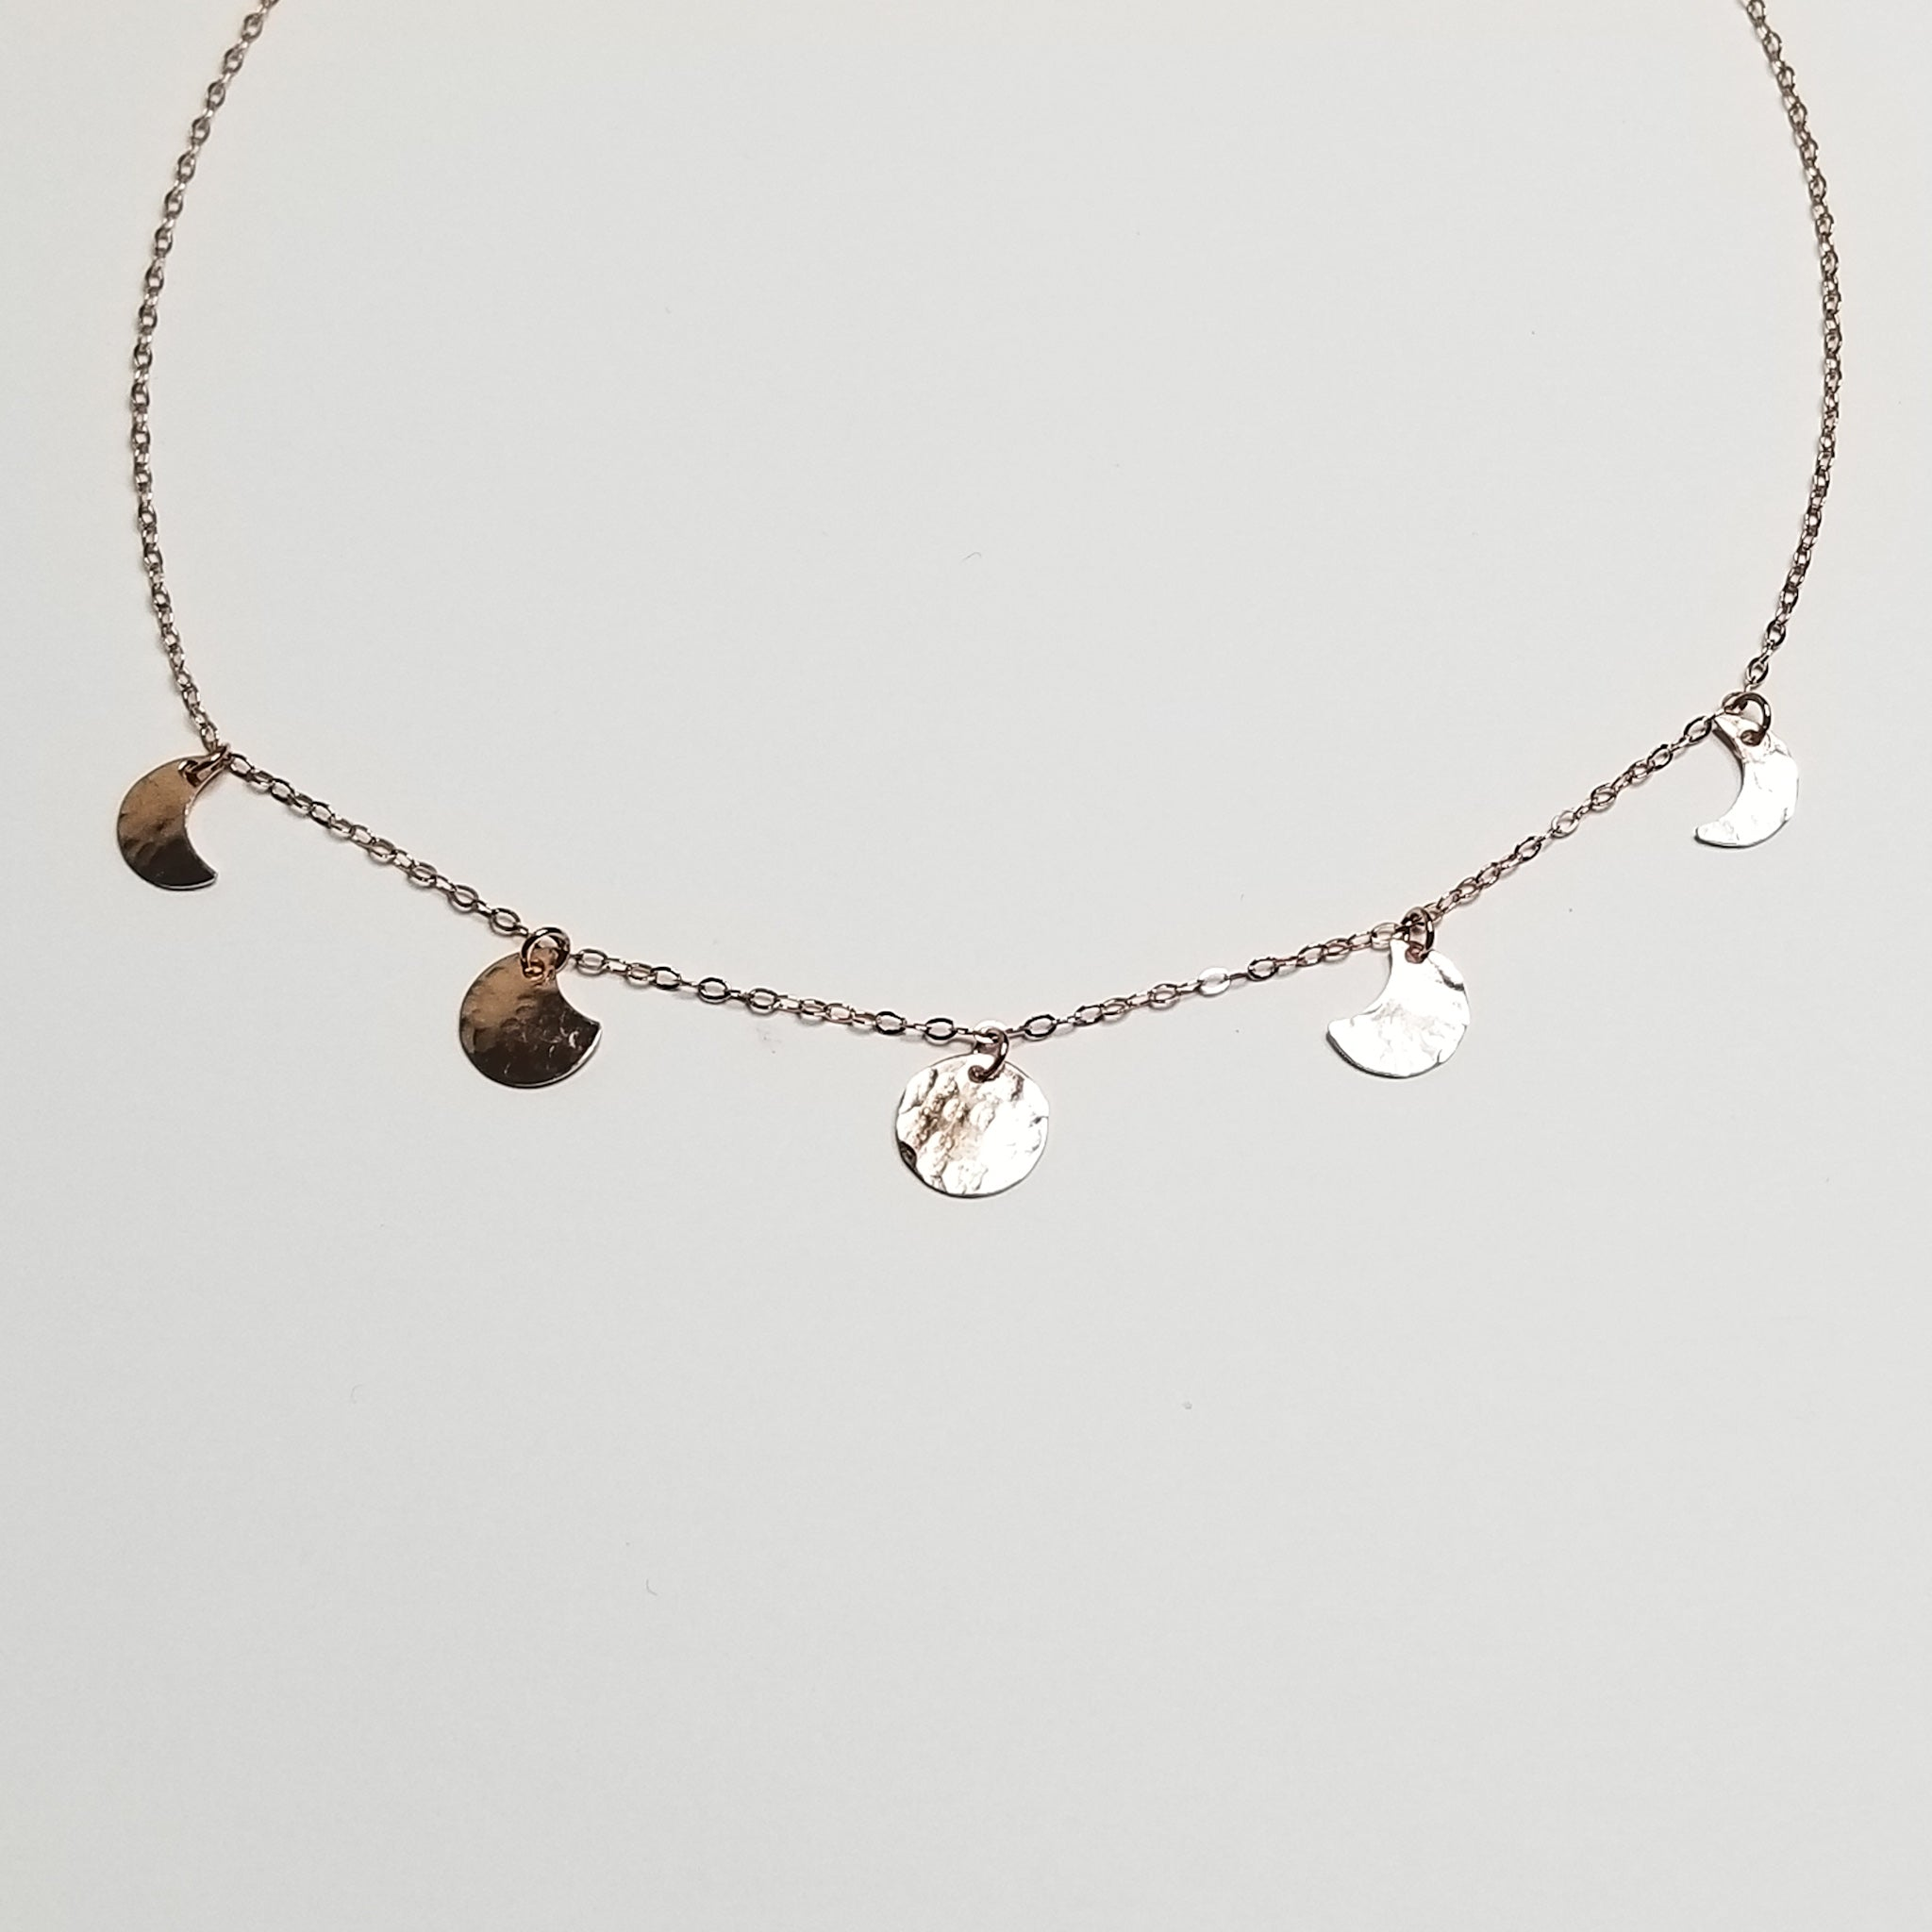 mini moonphase necklace - 14k rose gold filled